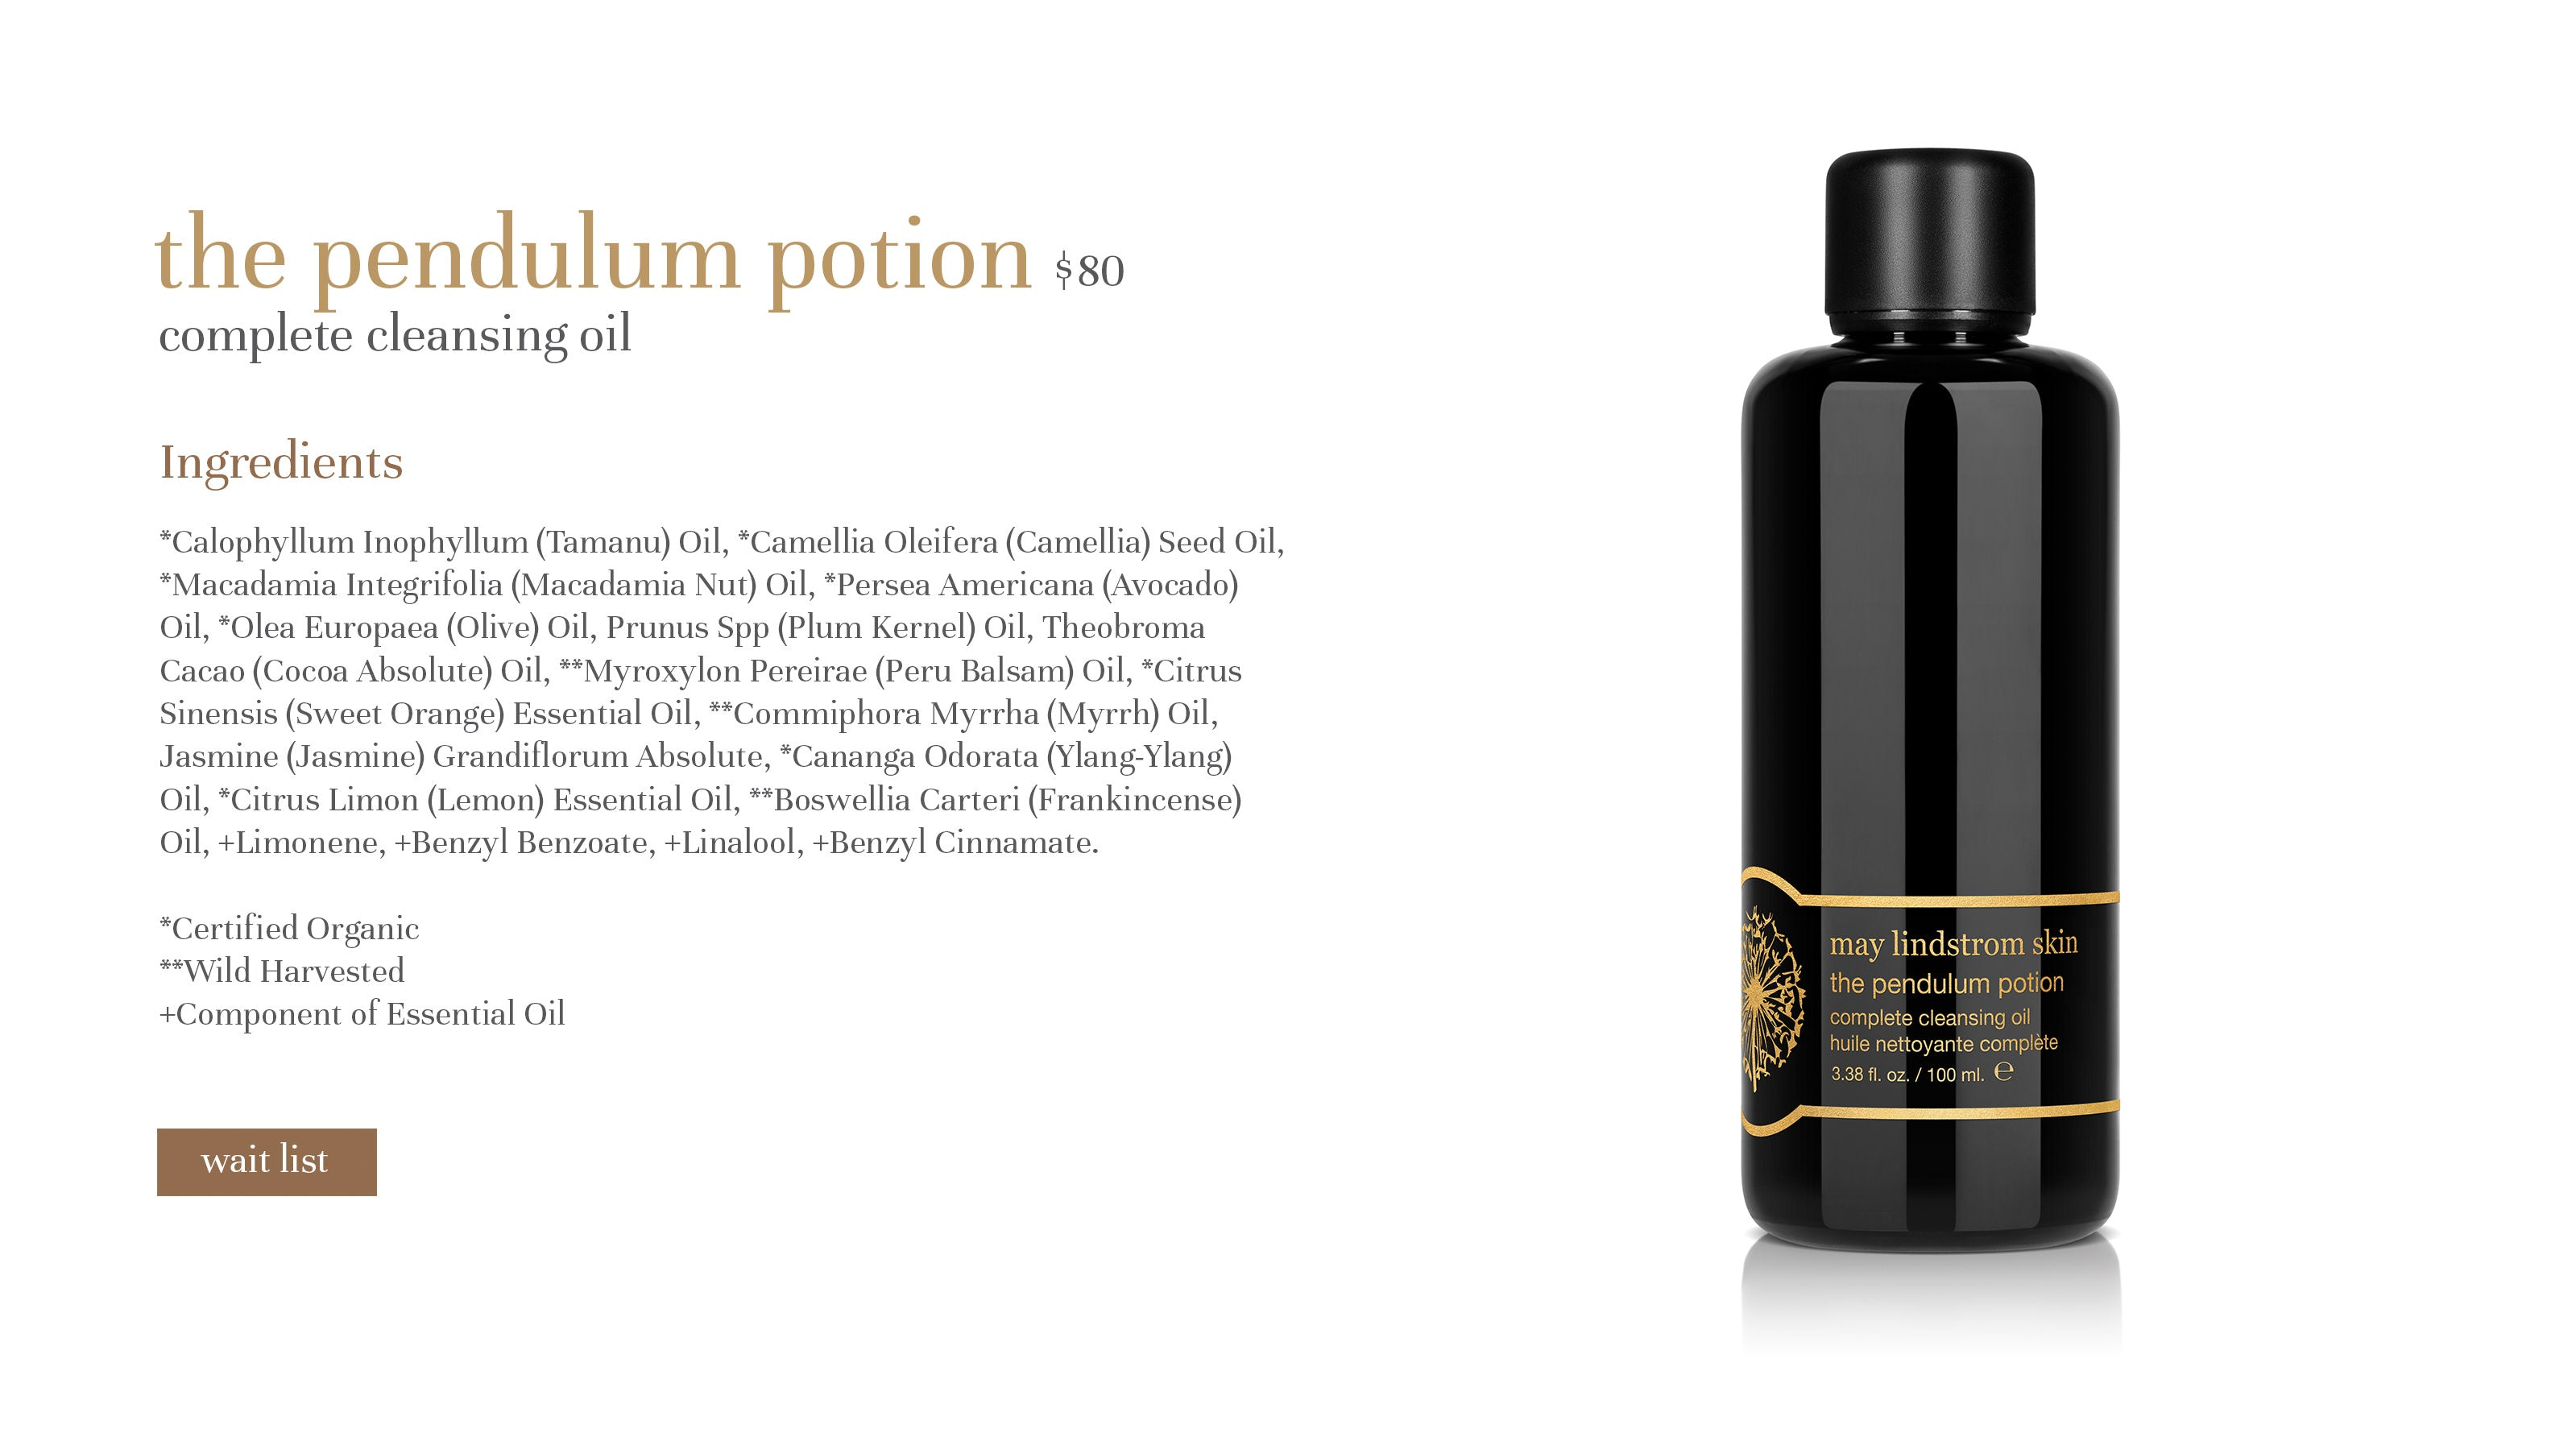 the pendulum potion $80 complete cleansing oil Ingredients *Calophyllum Inophyllum (Tamanu) Oil, *Camellia Oleifera (Camellia) Seed Oil, *Macadamia Integrifolia (Macadamia Nut) Oil, *Persea Americana (Avocado) Oil, *Olea Europaea (Olive) Oil, Prunus Spp (Plum Kernel) Oil, Theobroma Cacao (Cocoa Absolute) Oil, **Myroxylon Pereirae (Peru Balsam) Oil, *Citrus Sinensis (Sweet Orange) Essential Oil, **Commiphora Myrrha (Myrrh) Oil, Jasmine (Jasmine) Grandiflorum Absolute, *Cananga Odorata (Ylang-Ylang) Oil, *Citrus Limon (Lemon) Essential Oil, **Boswellia Carteri (Frankincense) Oil, +Limonene, +Benzyl Benzoate, +Linalool, +Benzyl Cinnamate.  *Certified Organic **Wild Harvested +Component of Essential Oil